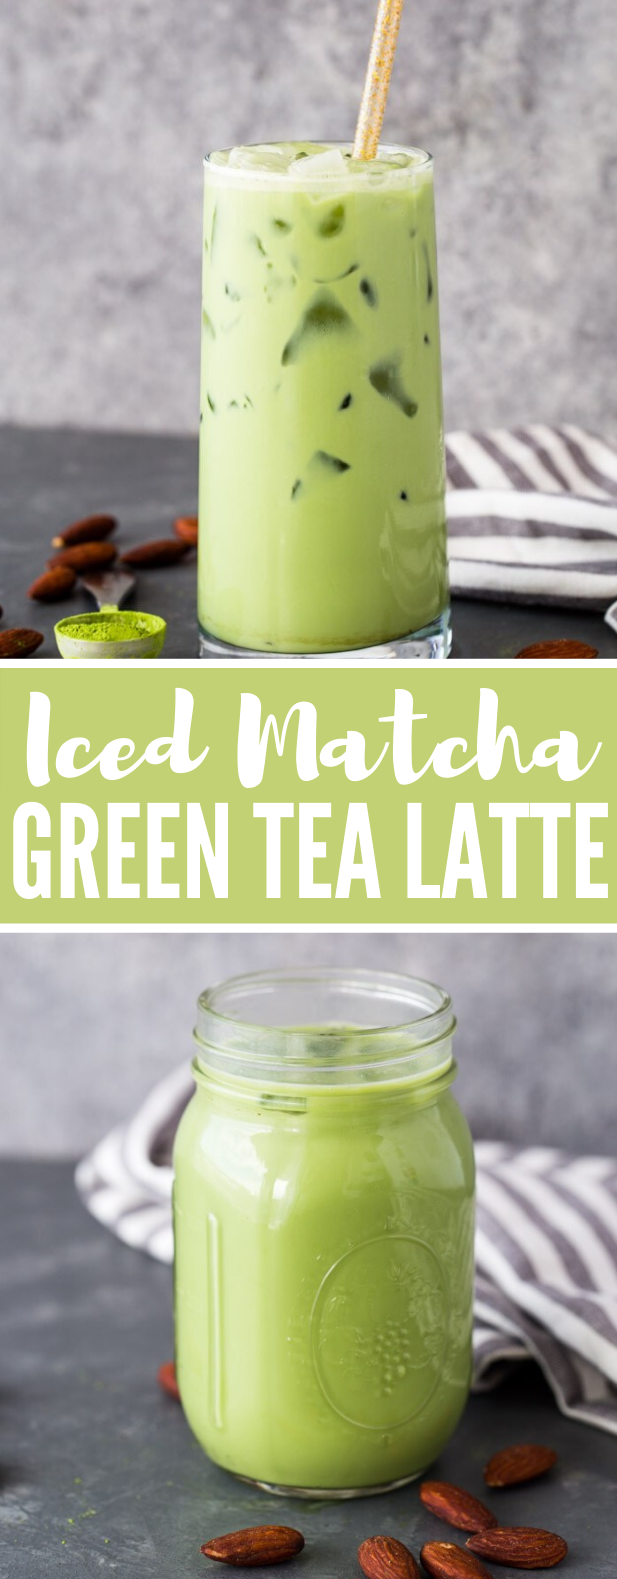 Iced Matcha Green Tea Latte #drinks #homemade #matcha #tea #milk